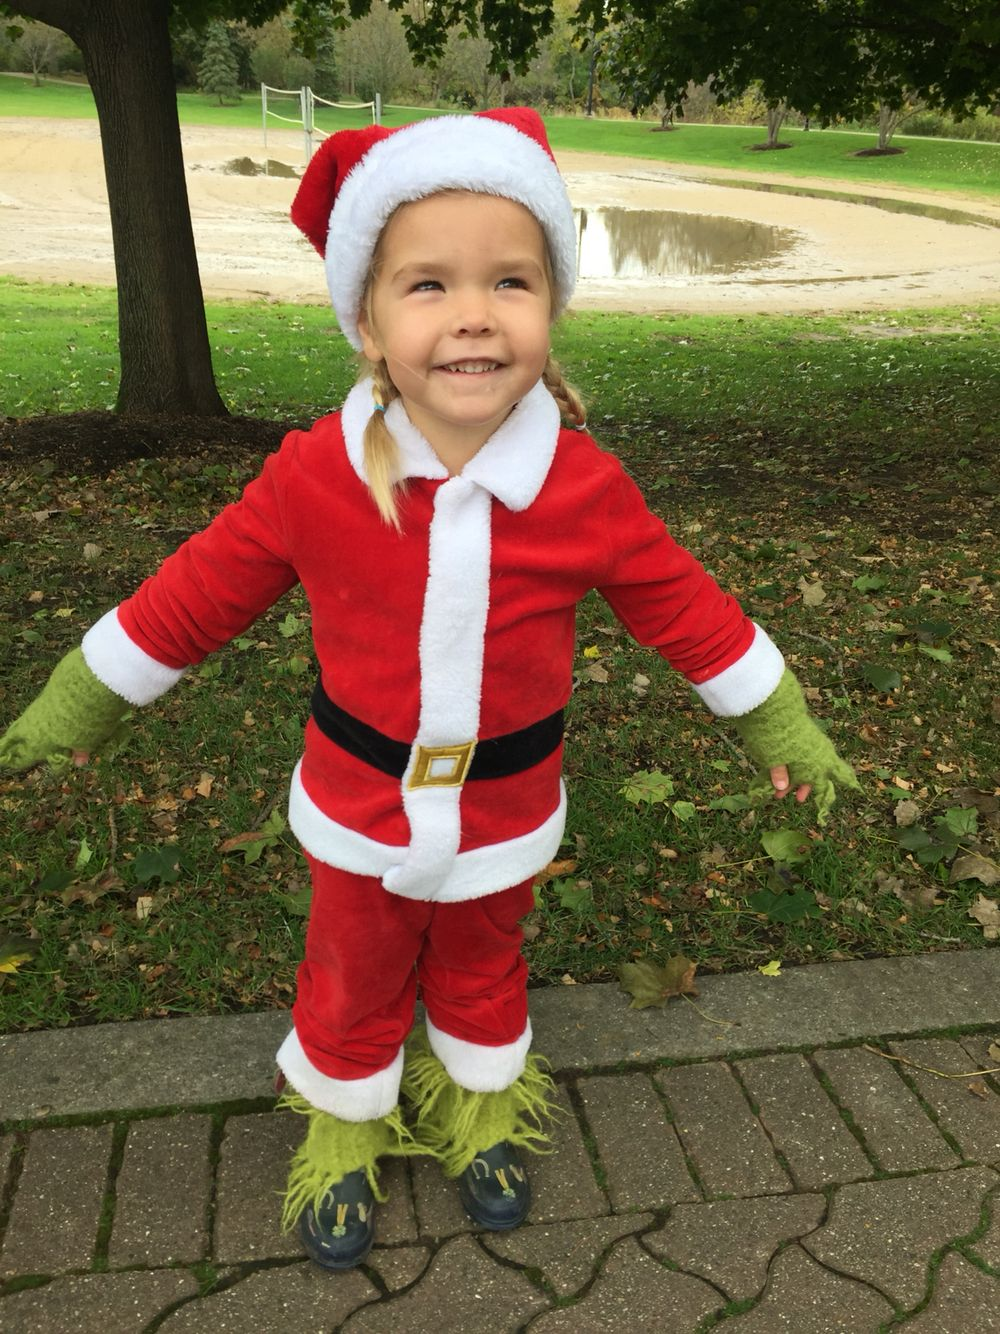 Halloween 2019 Ideas For Kids.Toddler Grinch Costume Homemade Halloween In 2019 Kids